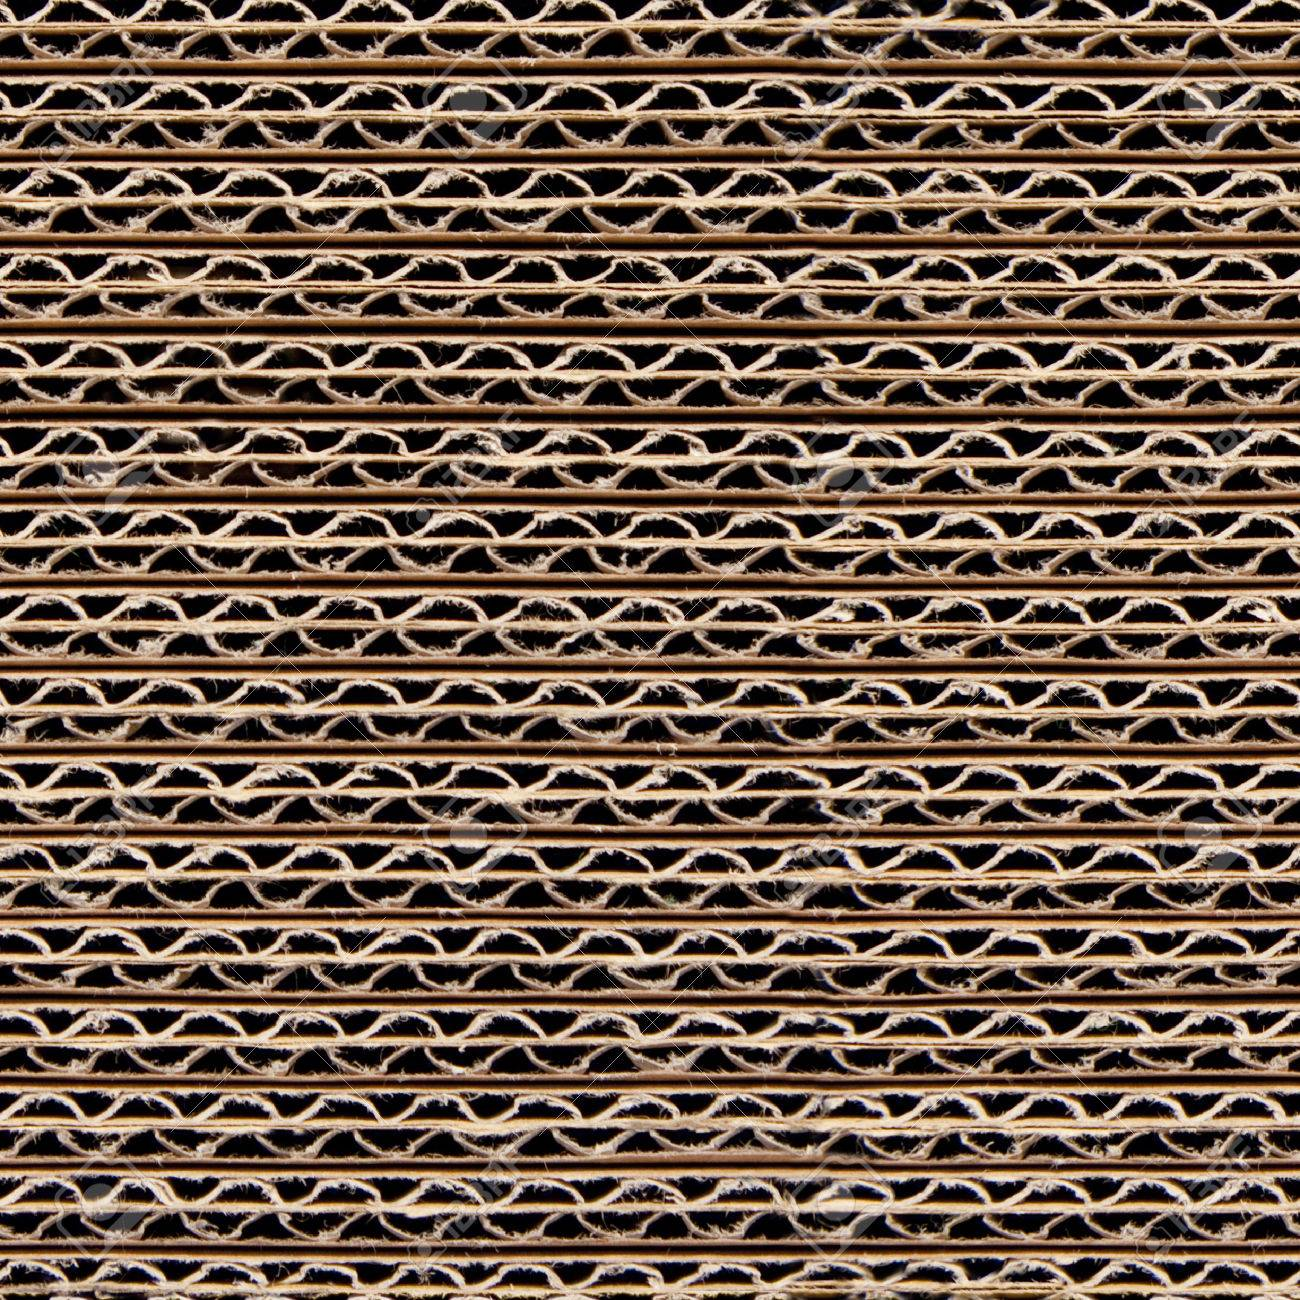 Repeating Corrugated Cardboard Background Texture This Picture Is A